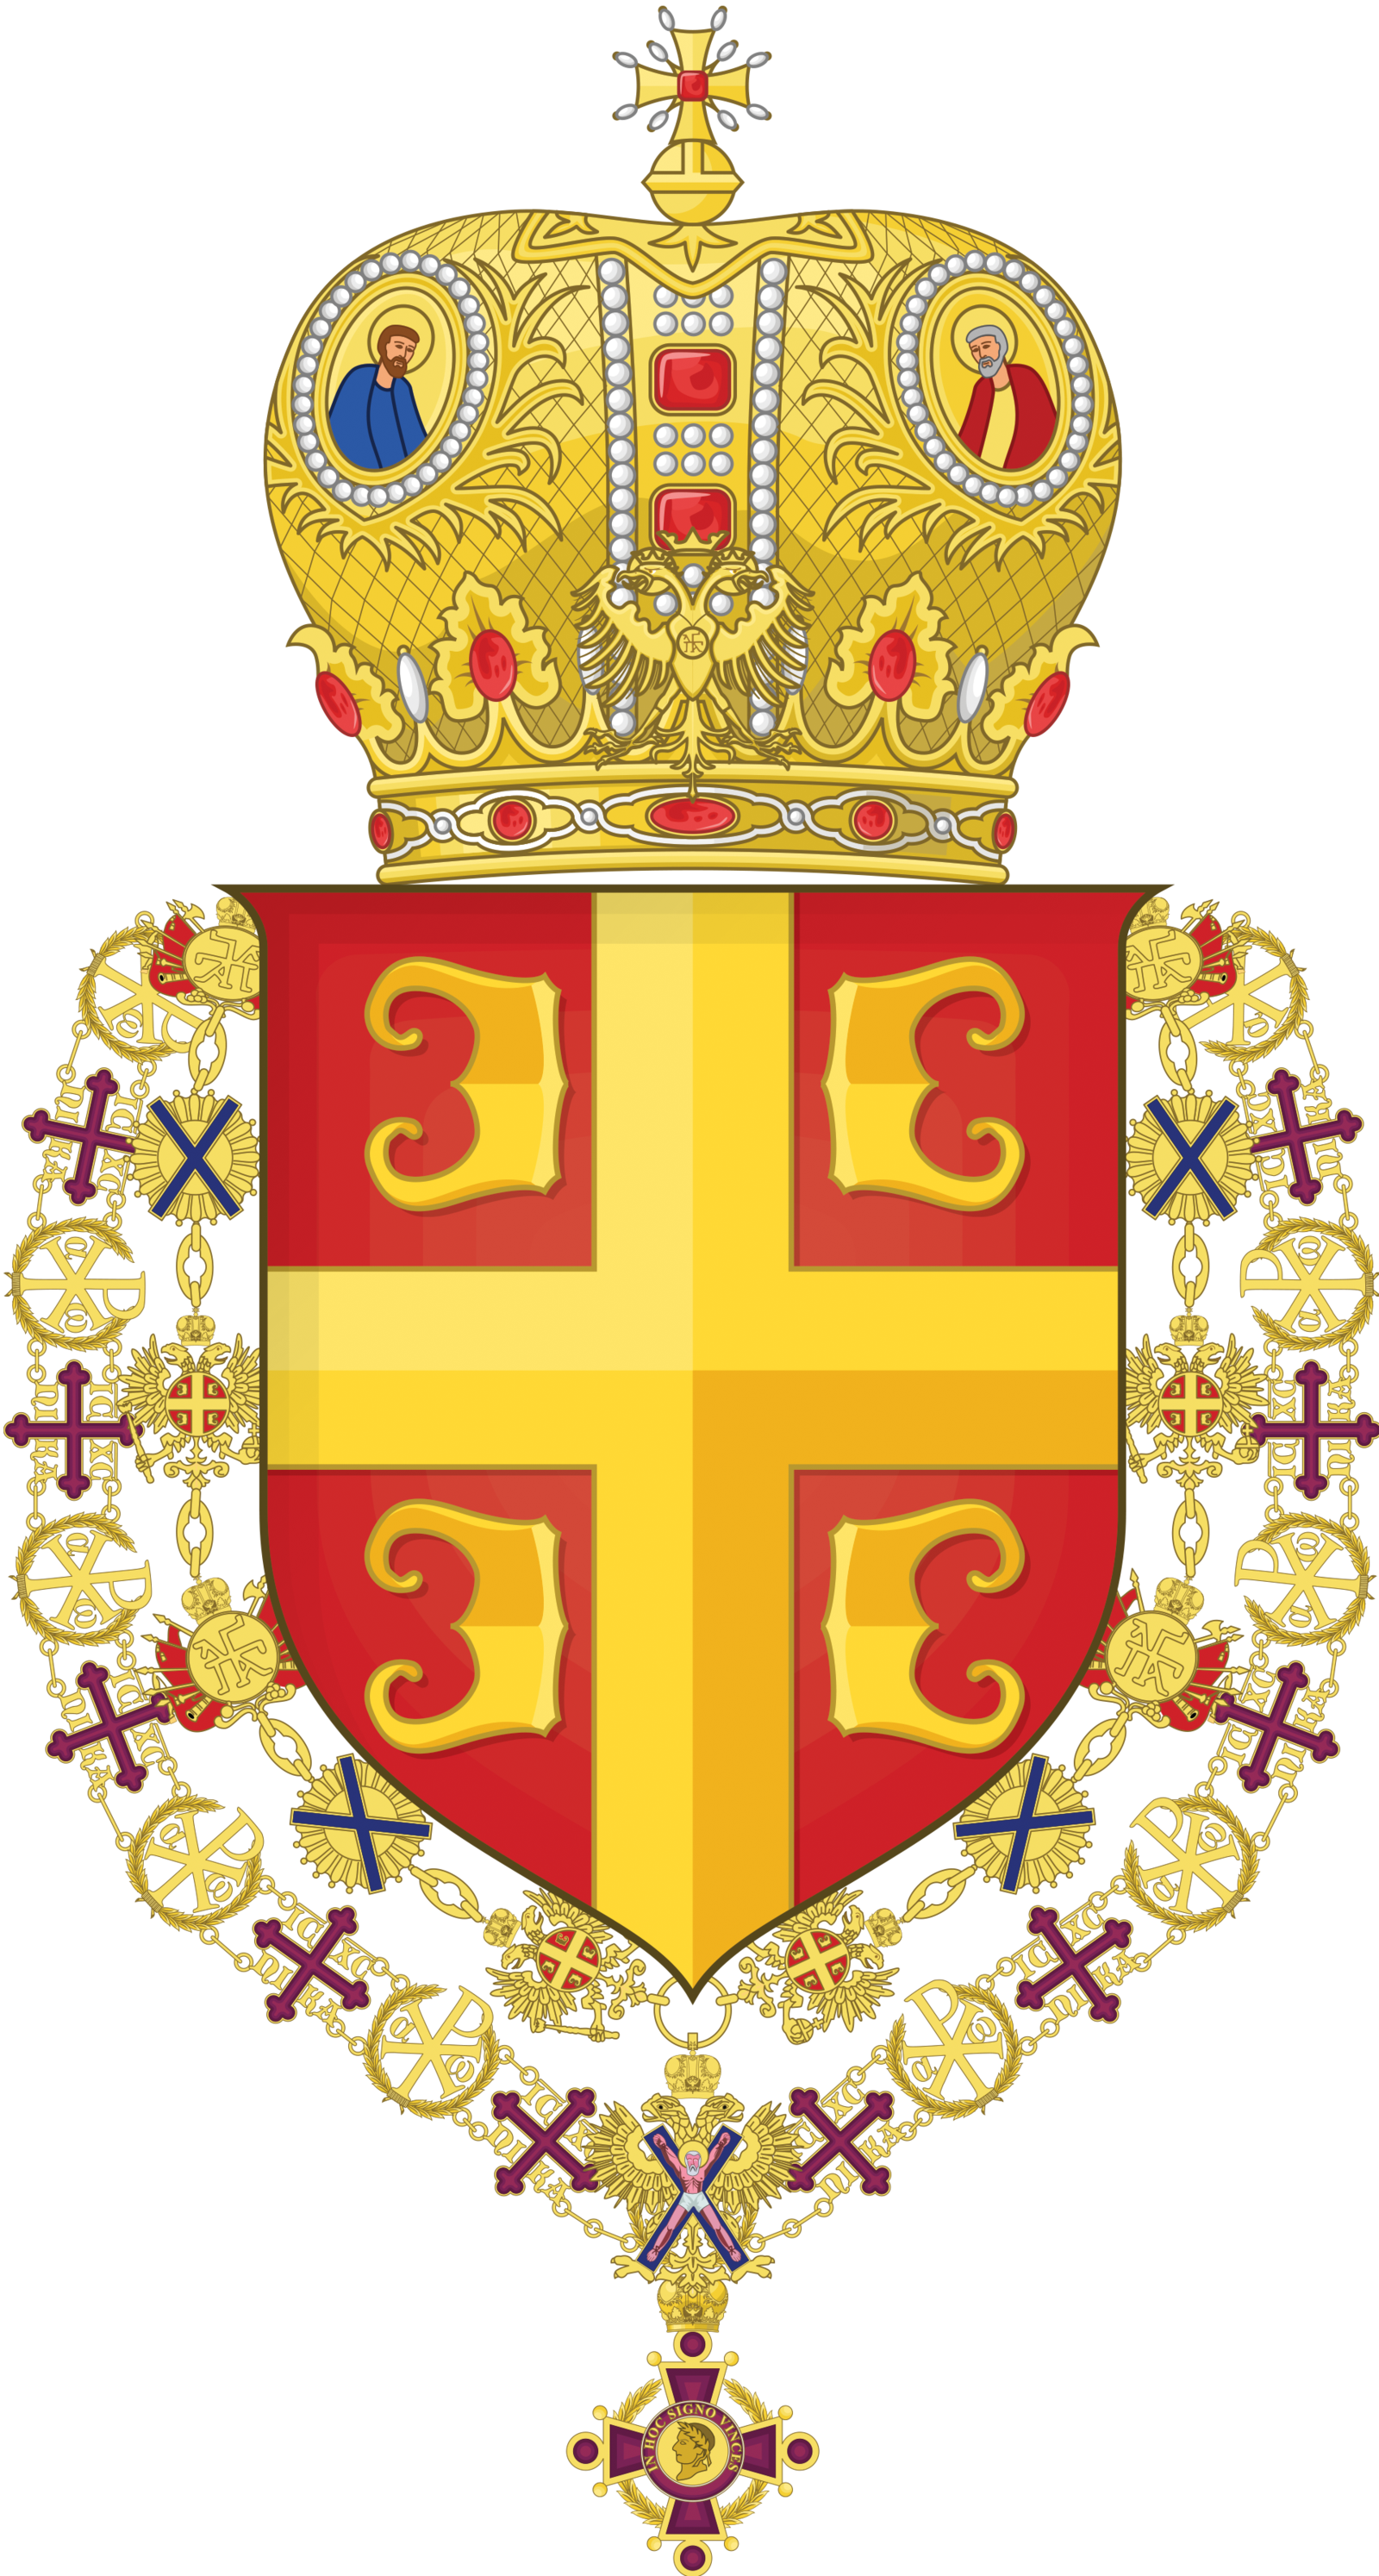 Surviving byzantine empire lesser coat of arms by regicollis surviving byzantine empire lesser coat of arms by regicollis buycottarizona Image collections